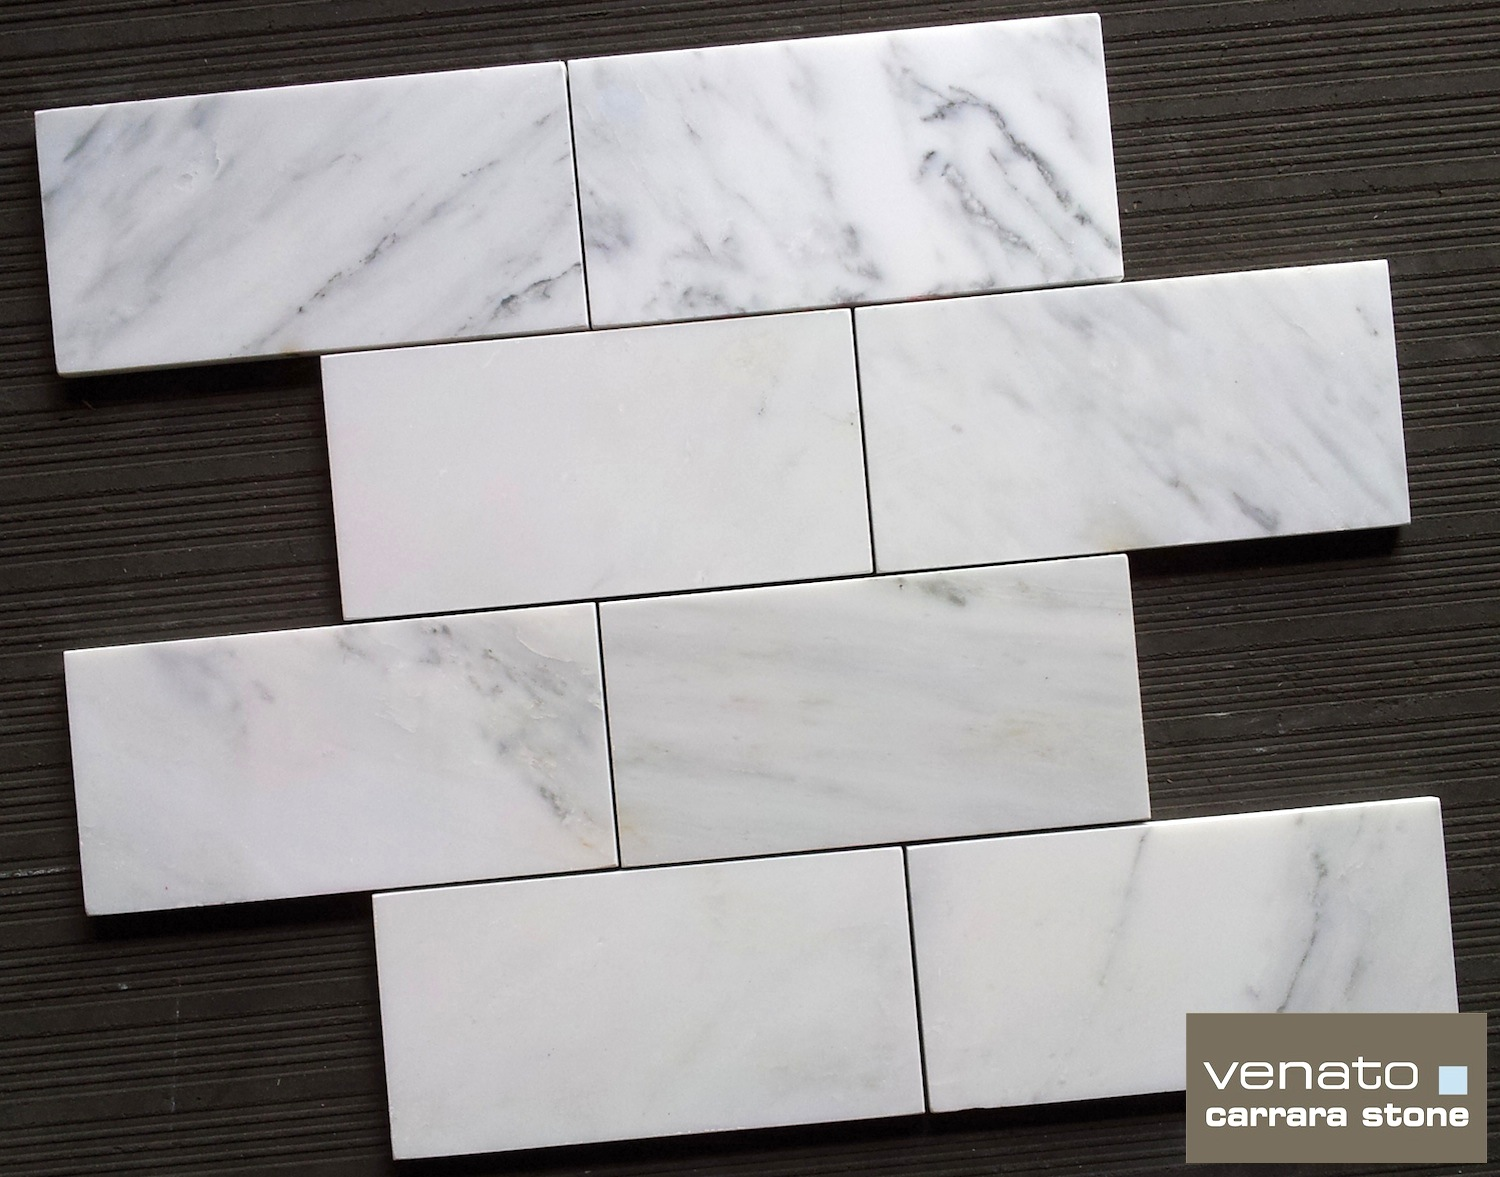 Generous 12 Ceramic Tile Thick 18 Inch Ceramic Tile Round 1X1 Ceramic Tile 200X200 Floor Tiles Young 2X2 Ceiling Tiles Lowes Dark3 X 6 White Subway Tile 4×8 Marble Tile | The Builder Depot Blog